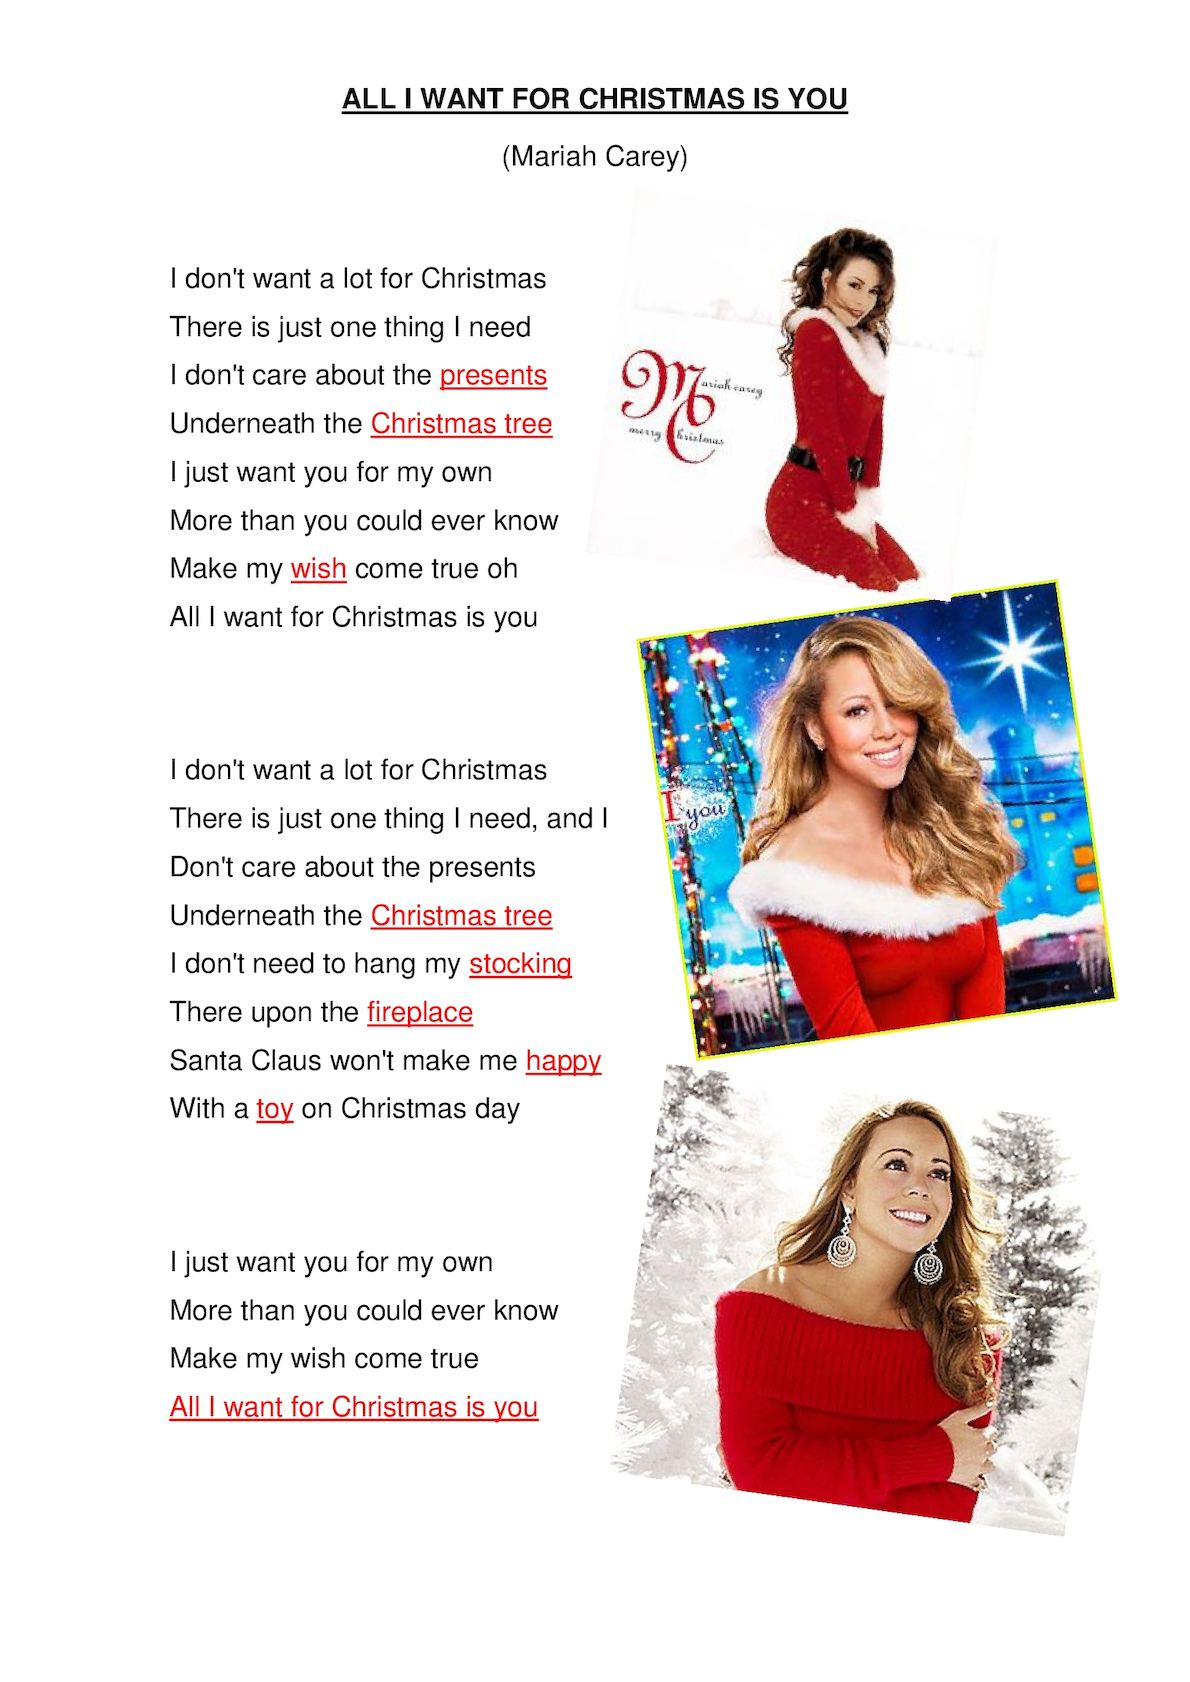 Lyrics All I Want For Christmas.Calameo All I Want For Christmas Lyrics